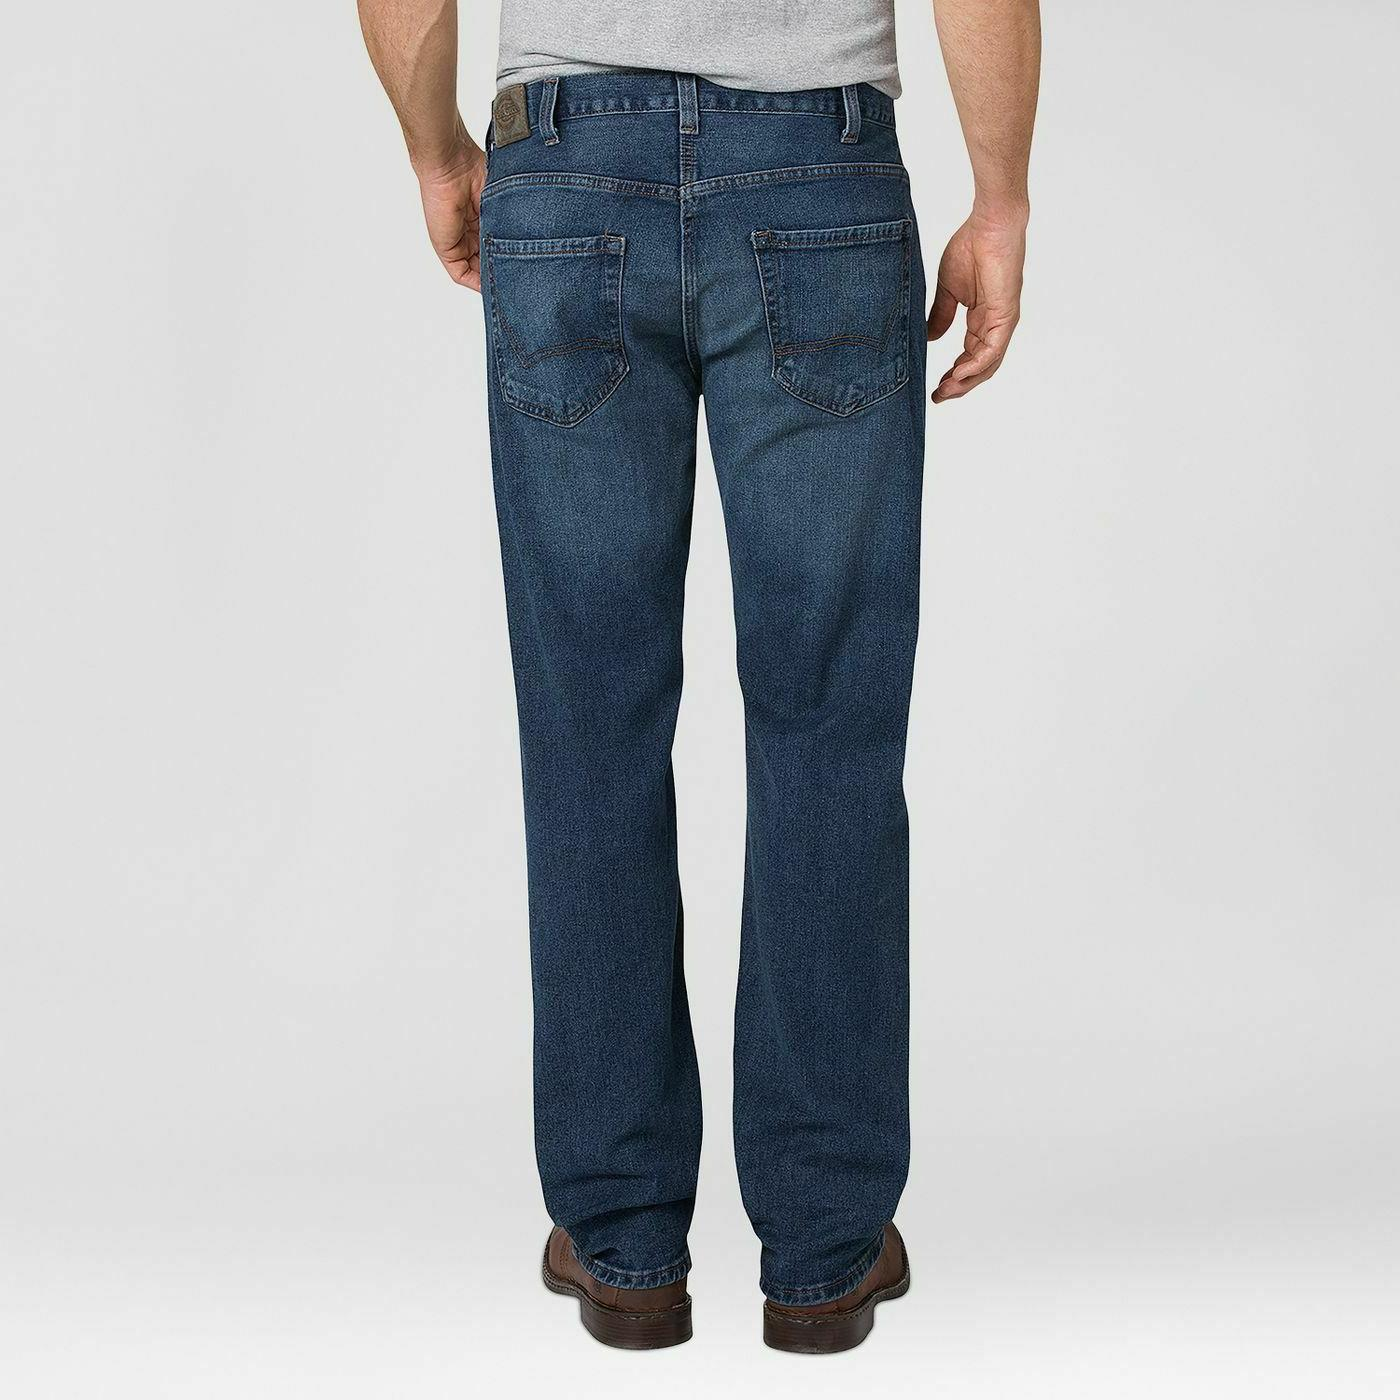 DICKIES MEN'S RELAXED STRAIGHT FIT FLEX WASH GET 50%